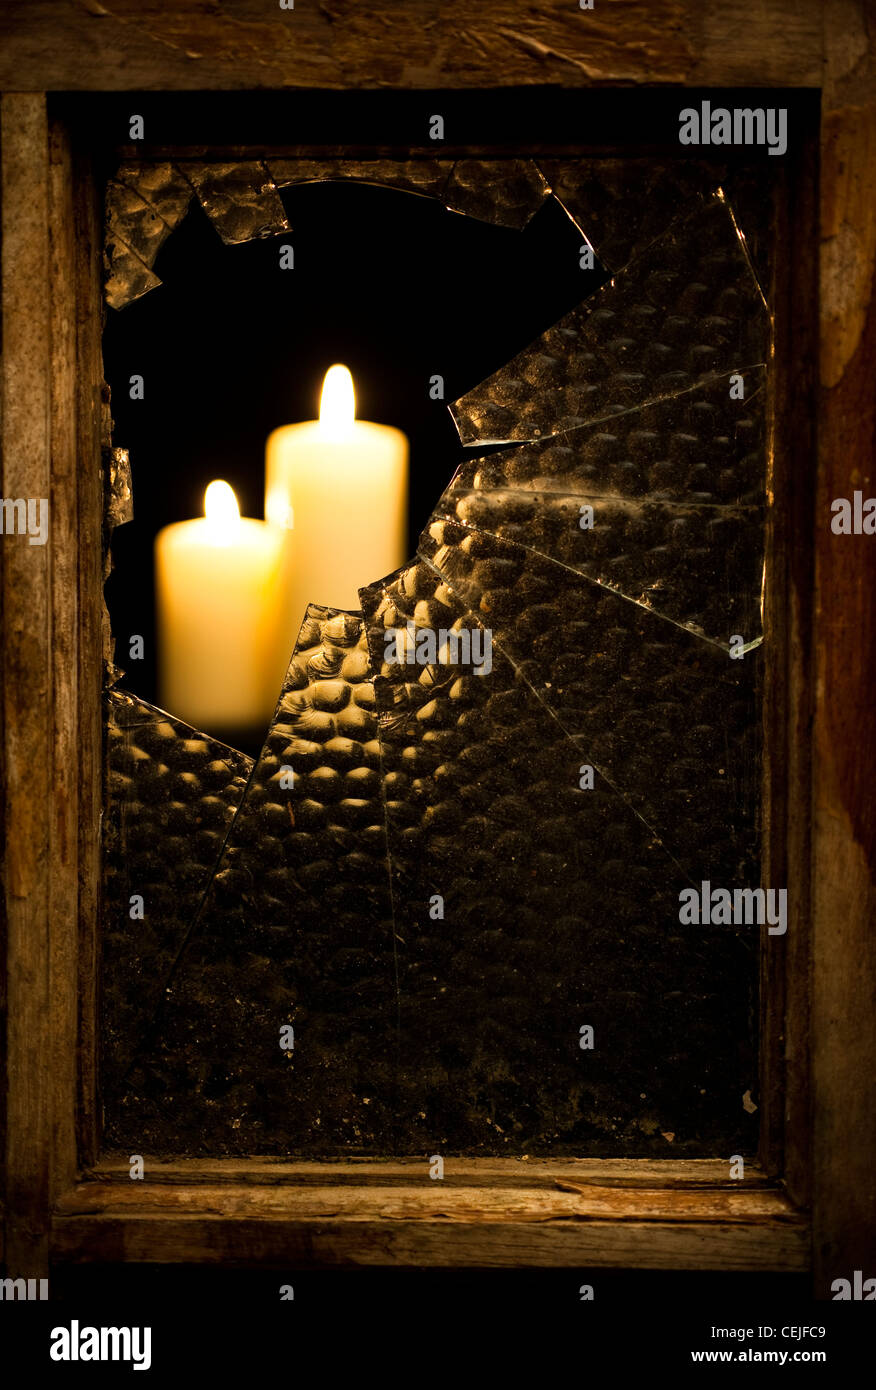 A broken glass window pane with lit candles - Stock Image